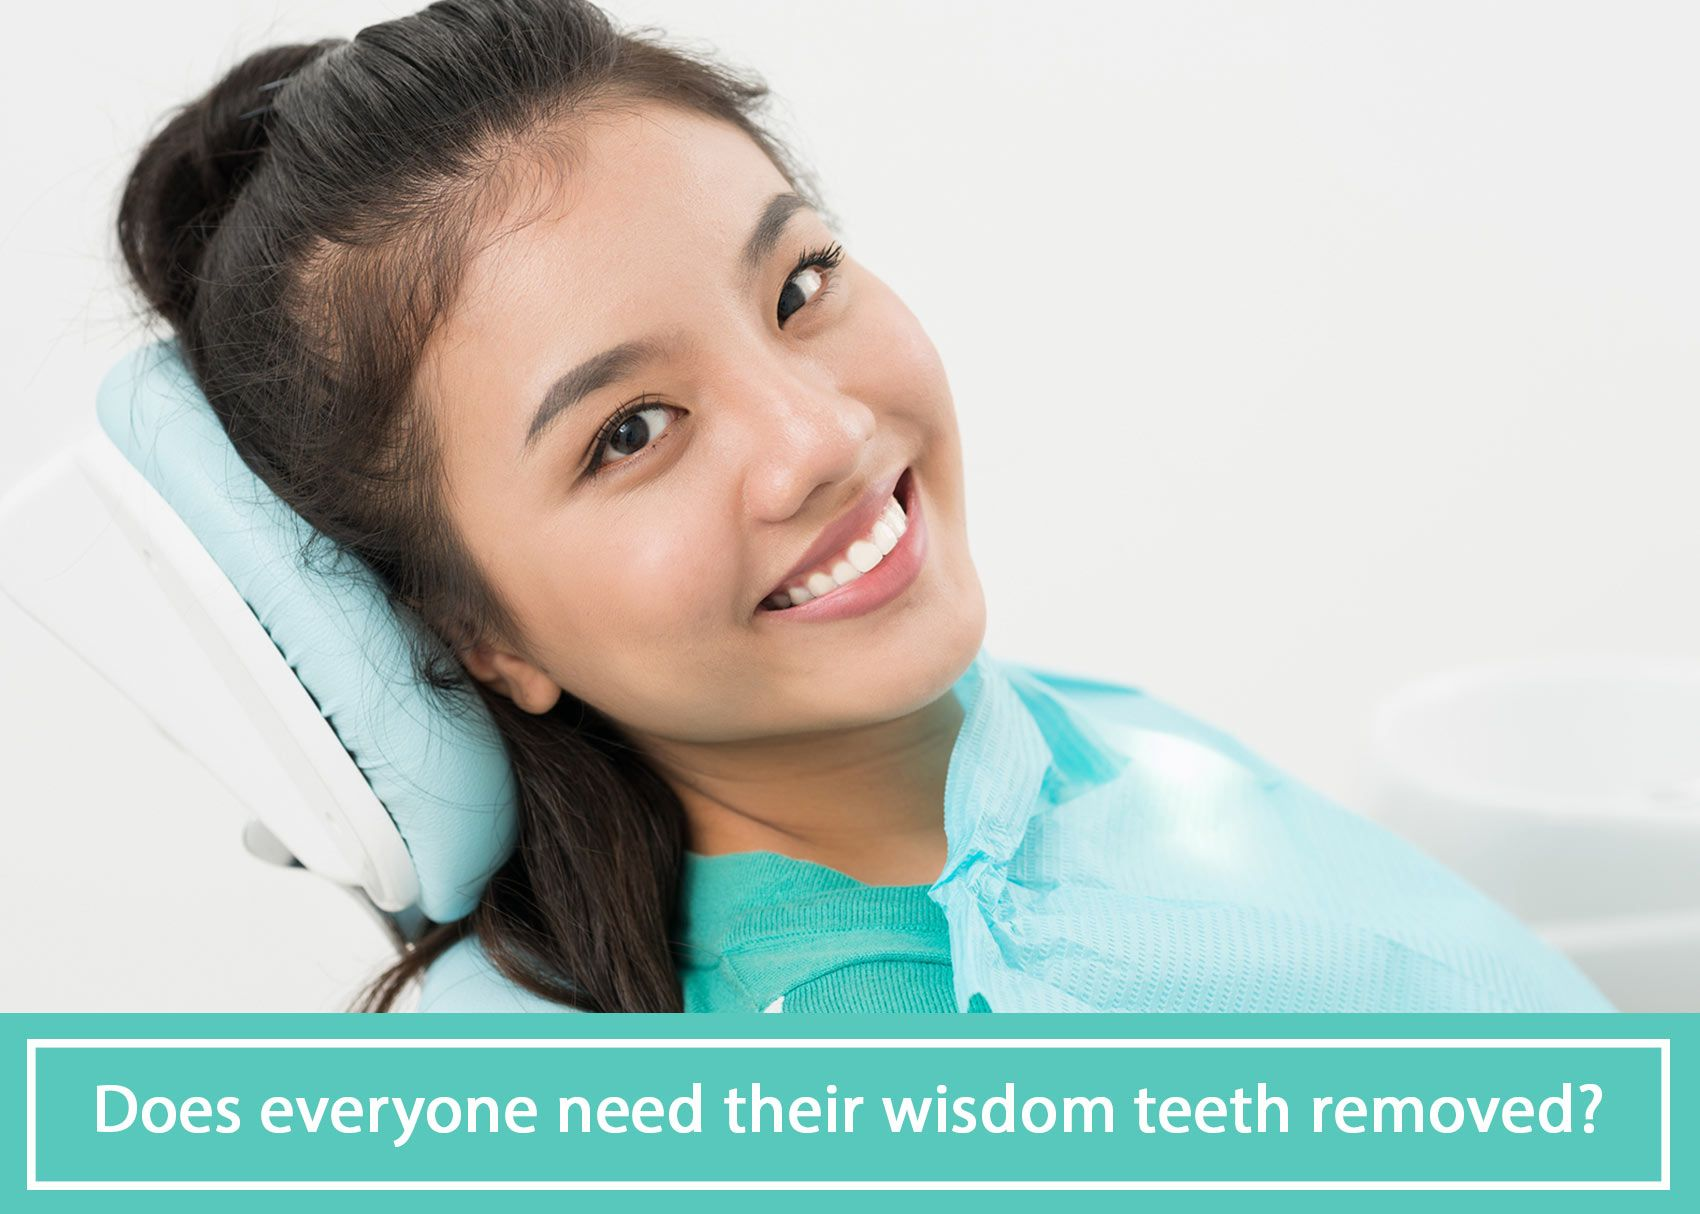 While everyone may not need their wisdom teeth removed, it